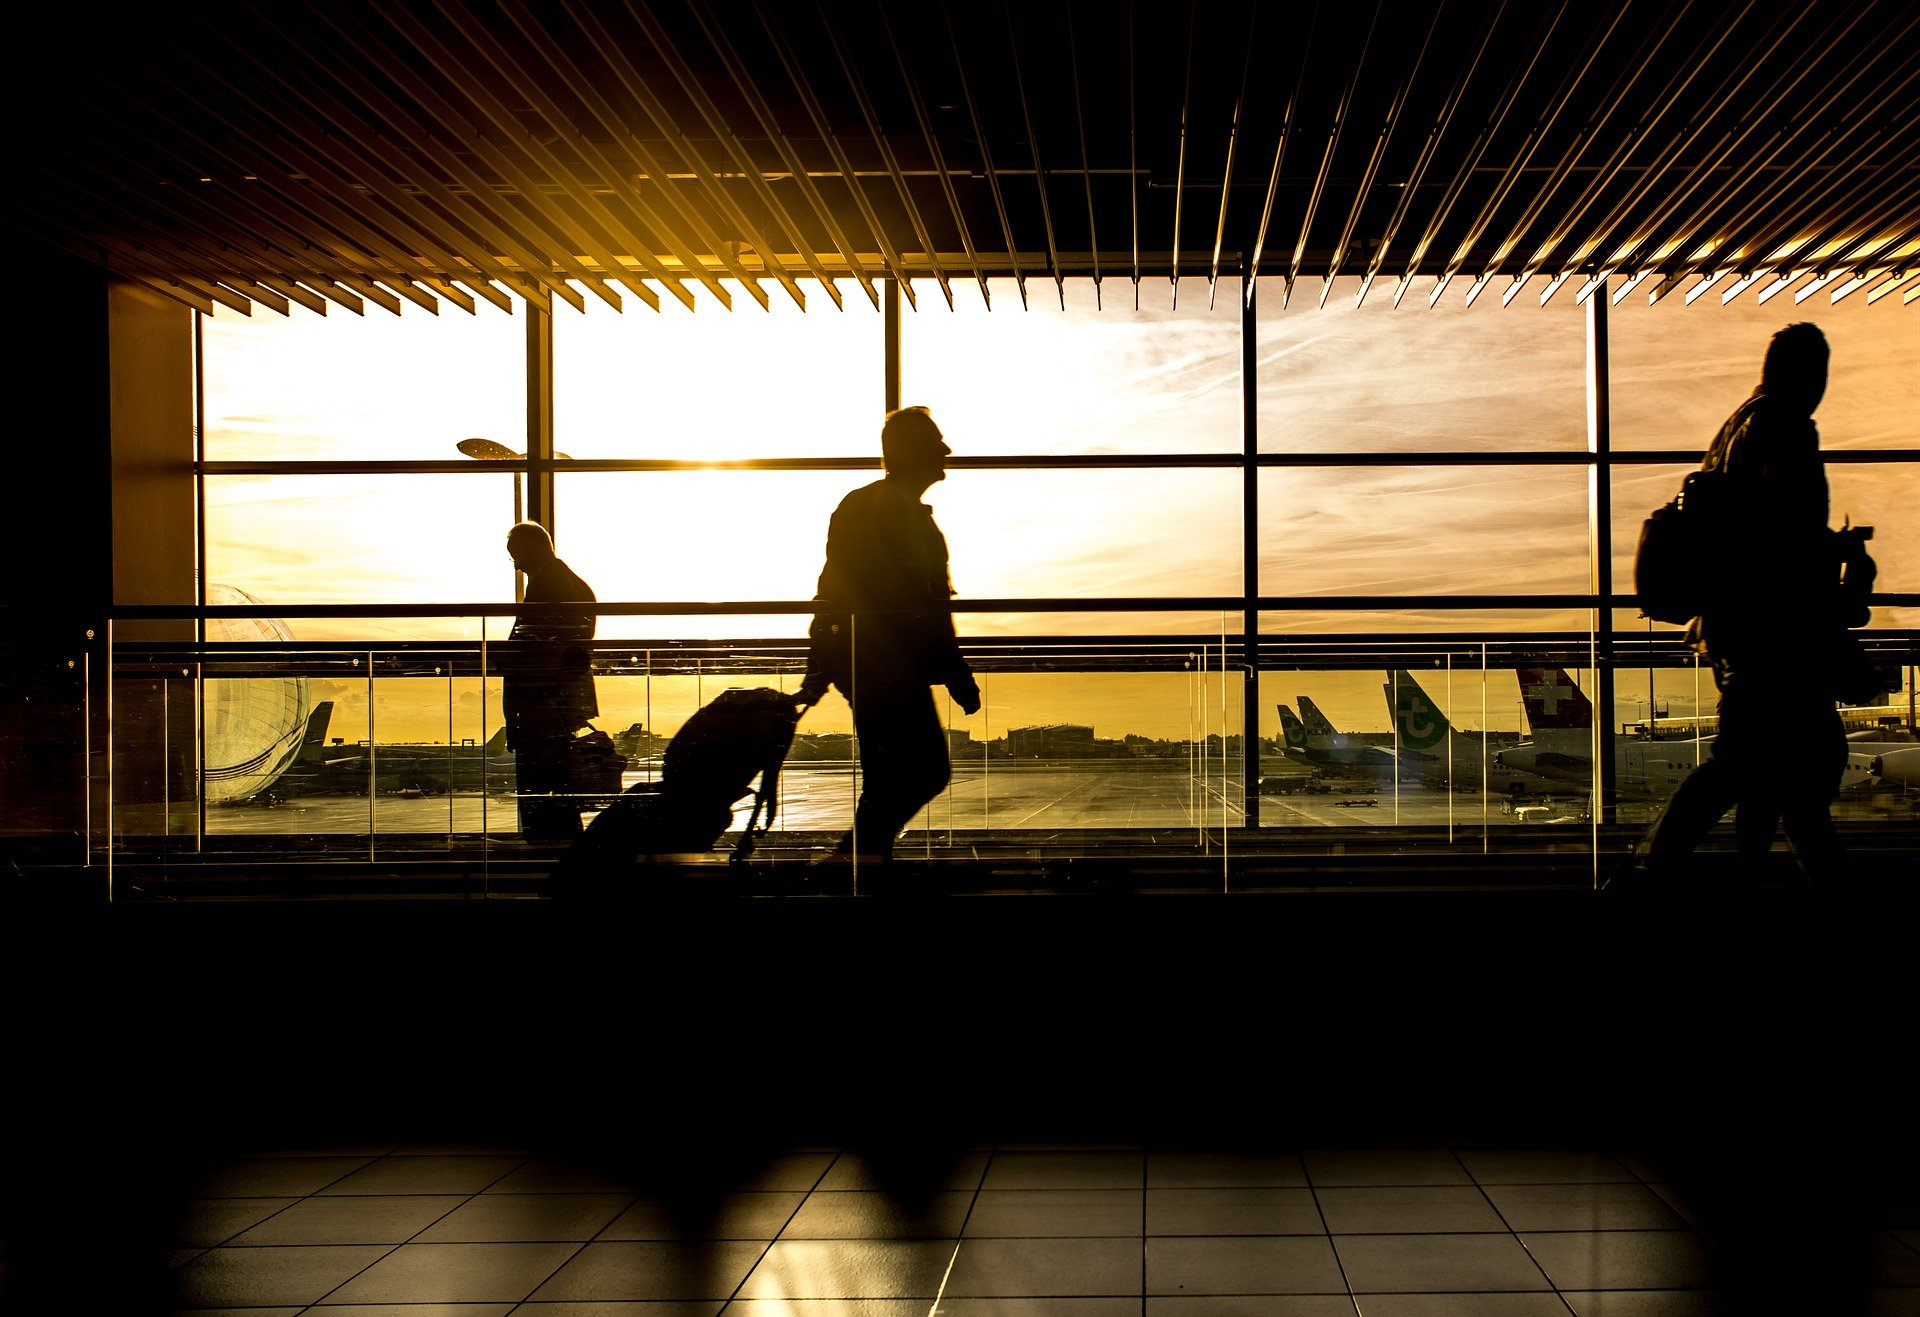 There will always be language complications in an airport. | Photo: Pixabay/Rudy and Peter Skitterians